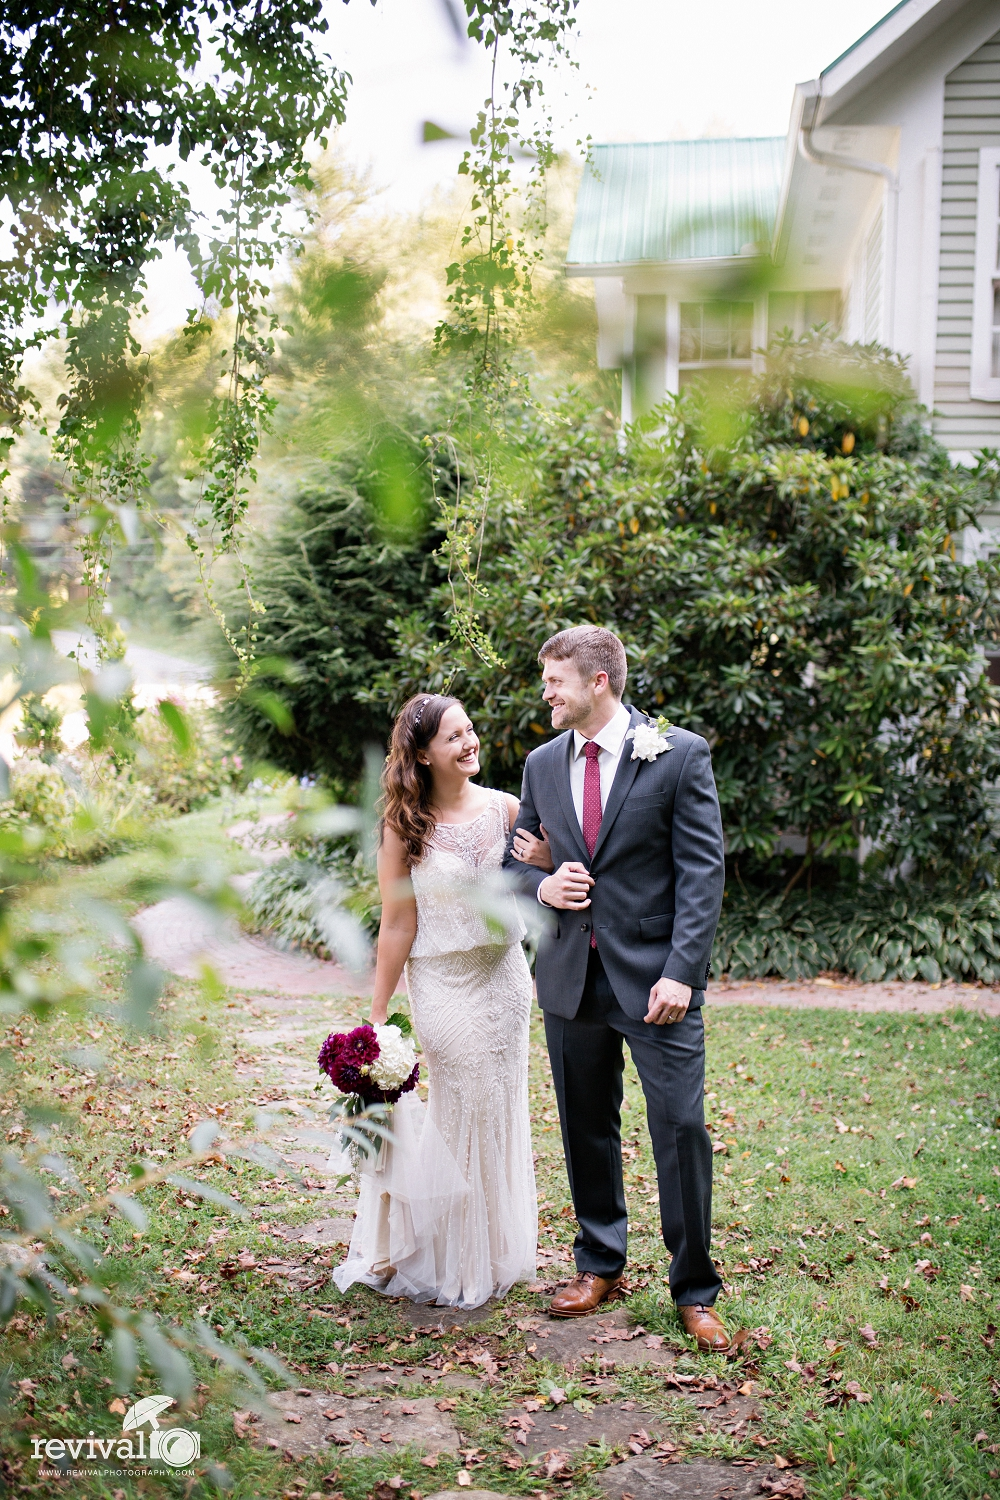 KAYLEE + NATHAN'S INTIMATE WEDDING AT THE MAST FARM INN by Revival Photography NC Photographers Intimate weddings and Elopements